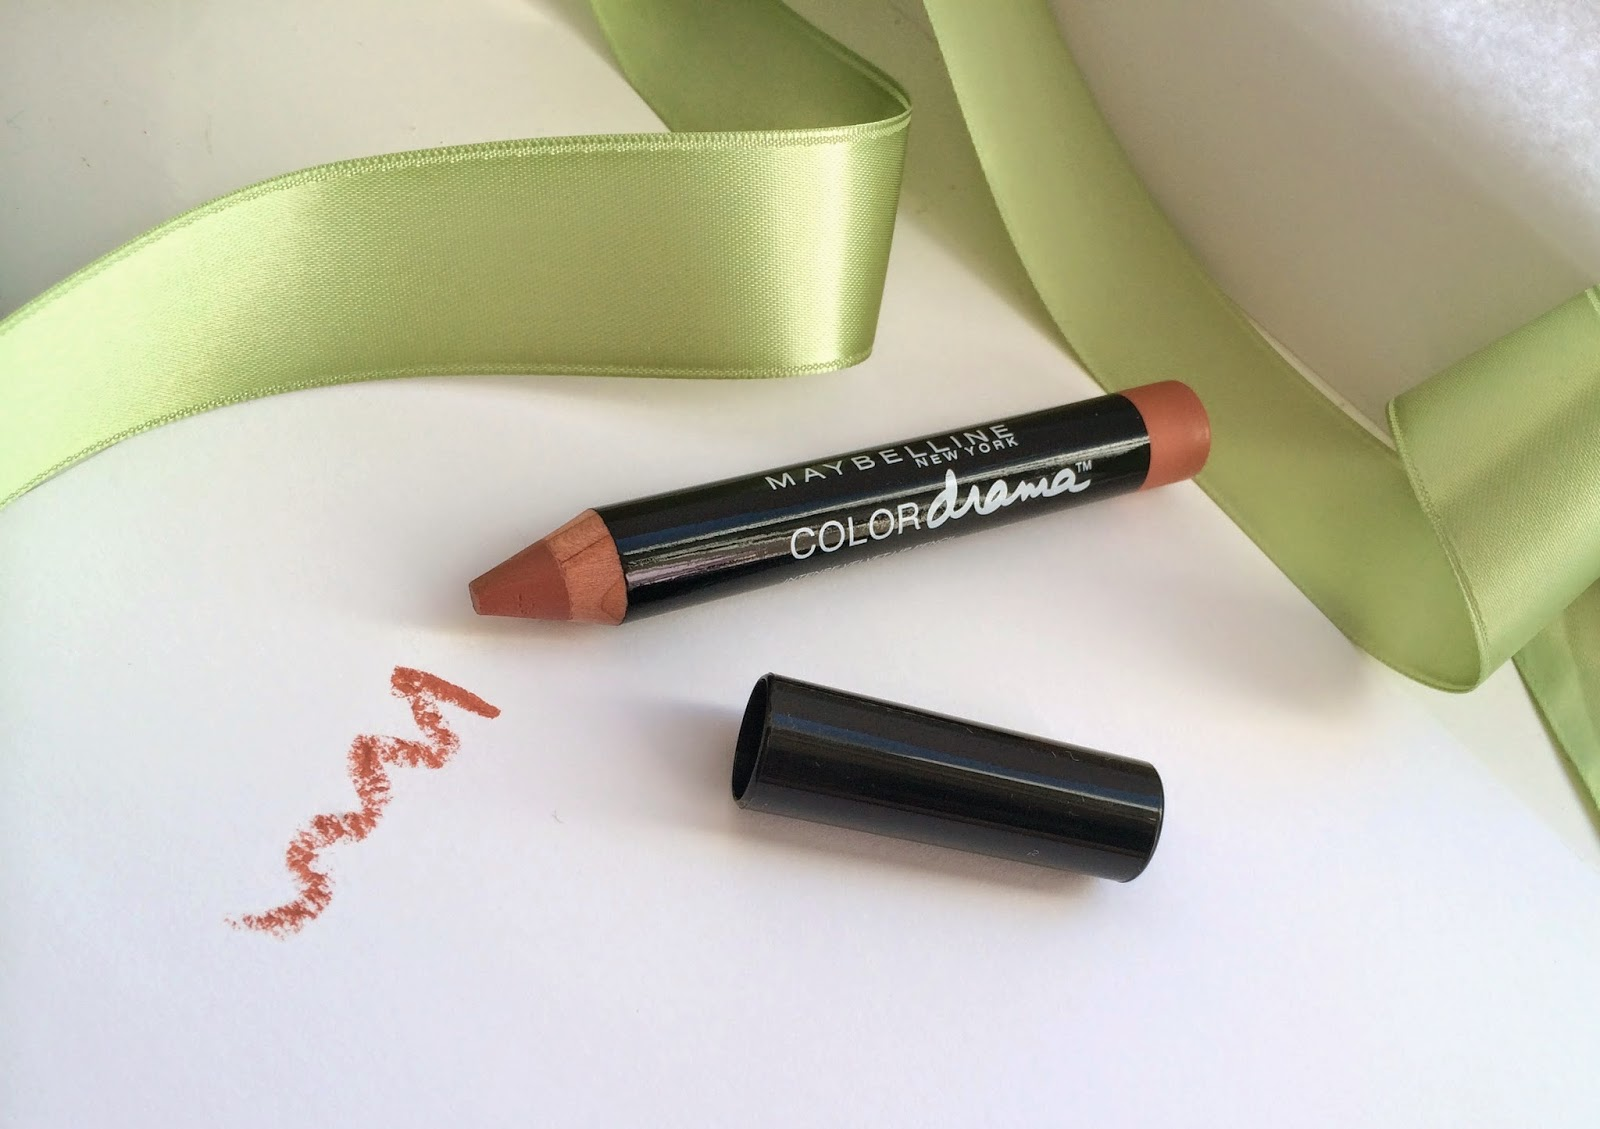 maybelline-color-drama-lipstick-pencil-review